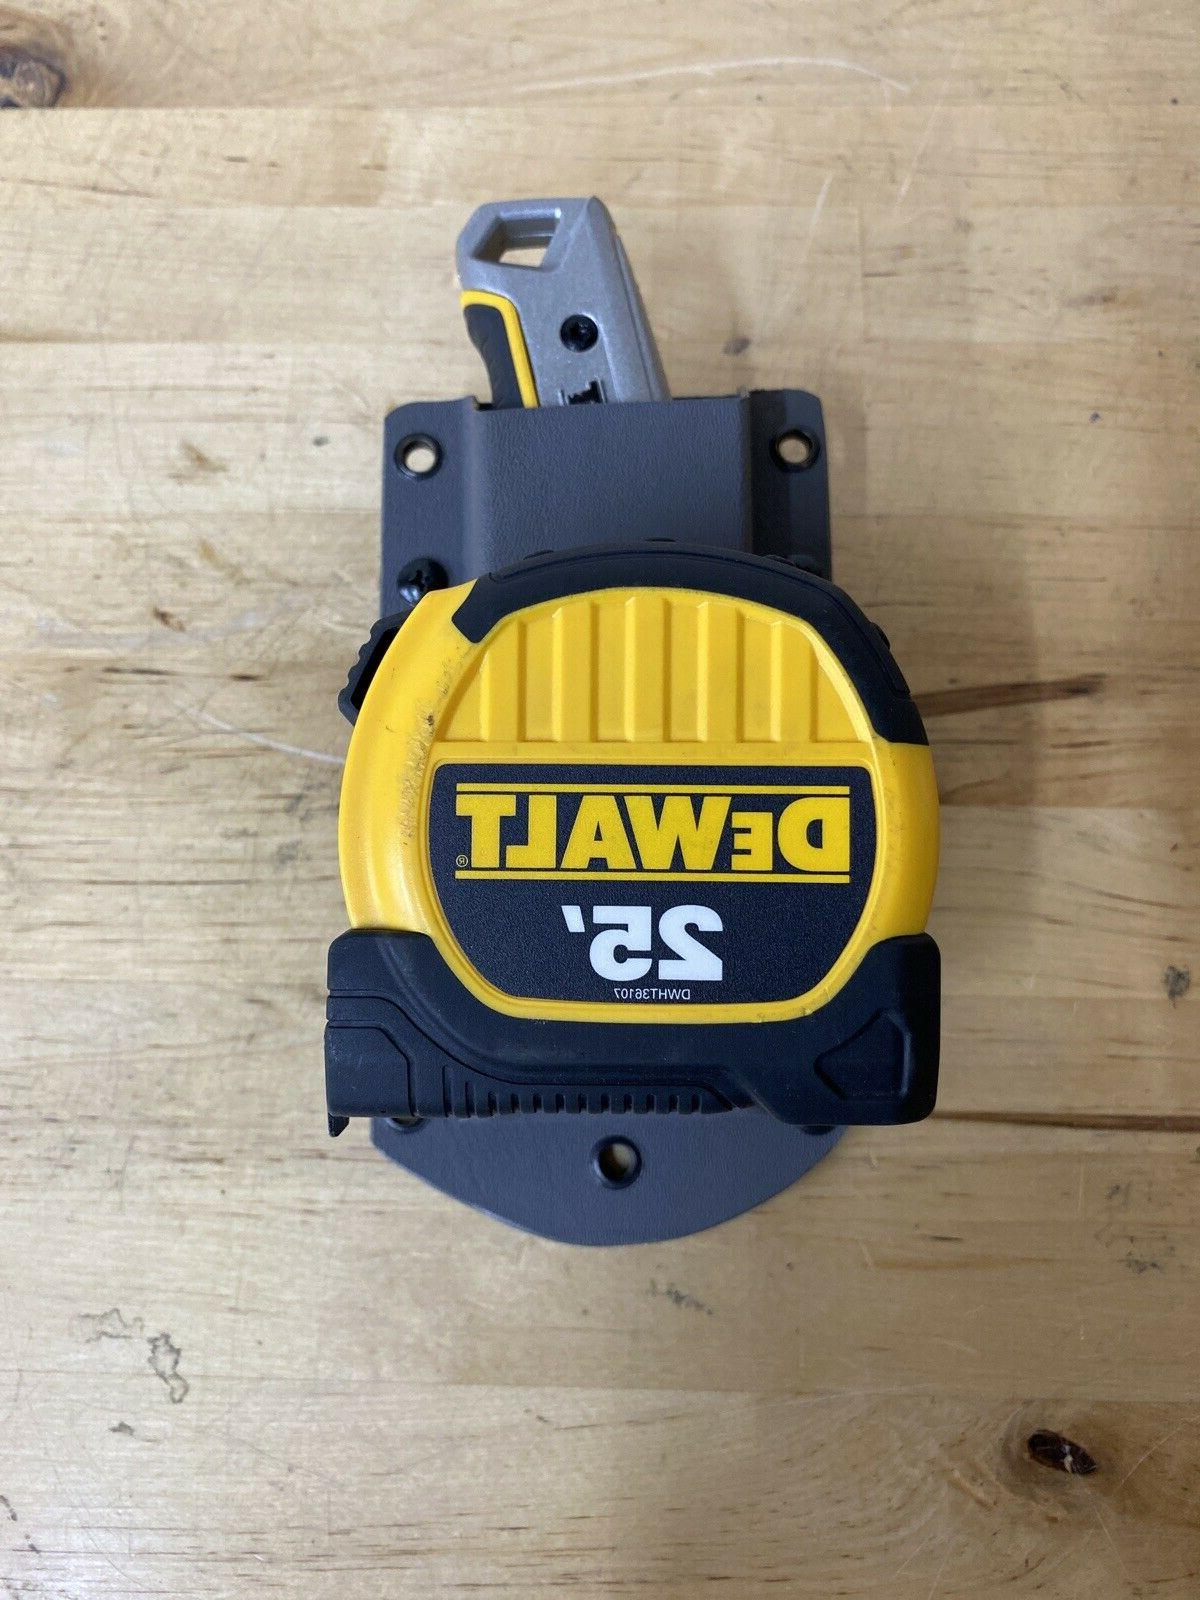 tape measure holder and dewalt cordless drill